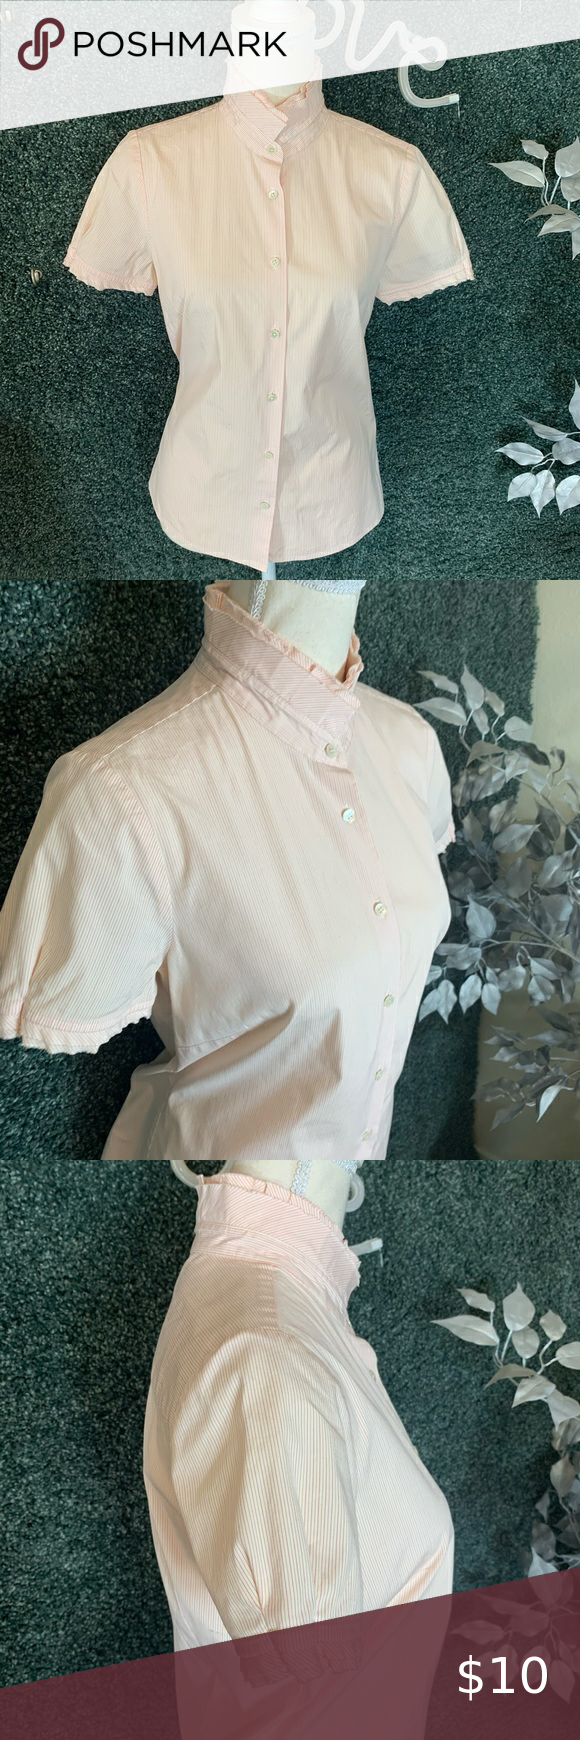 J. Crew Pink Pinstripe Button Down Top Small, 97% cotton, 3% spandex, 7 buttons, short sleeves, 24.5